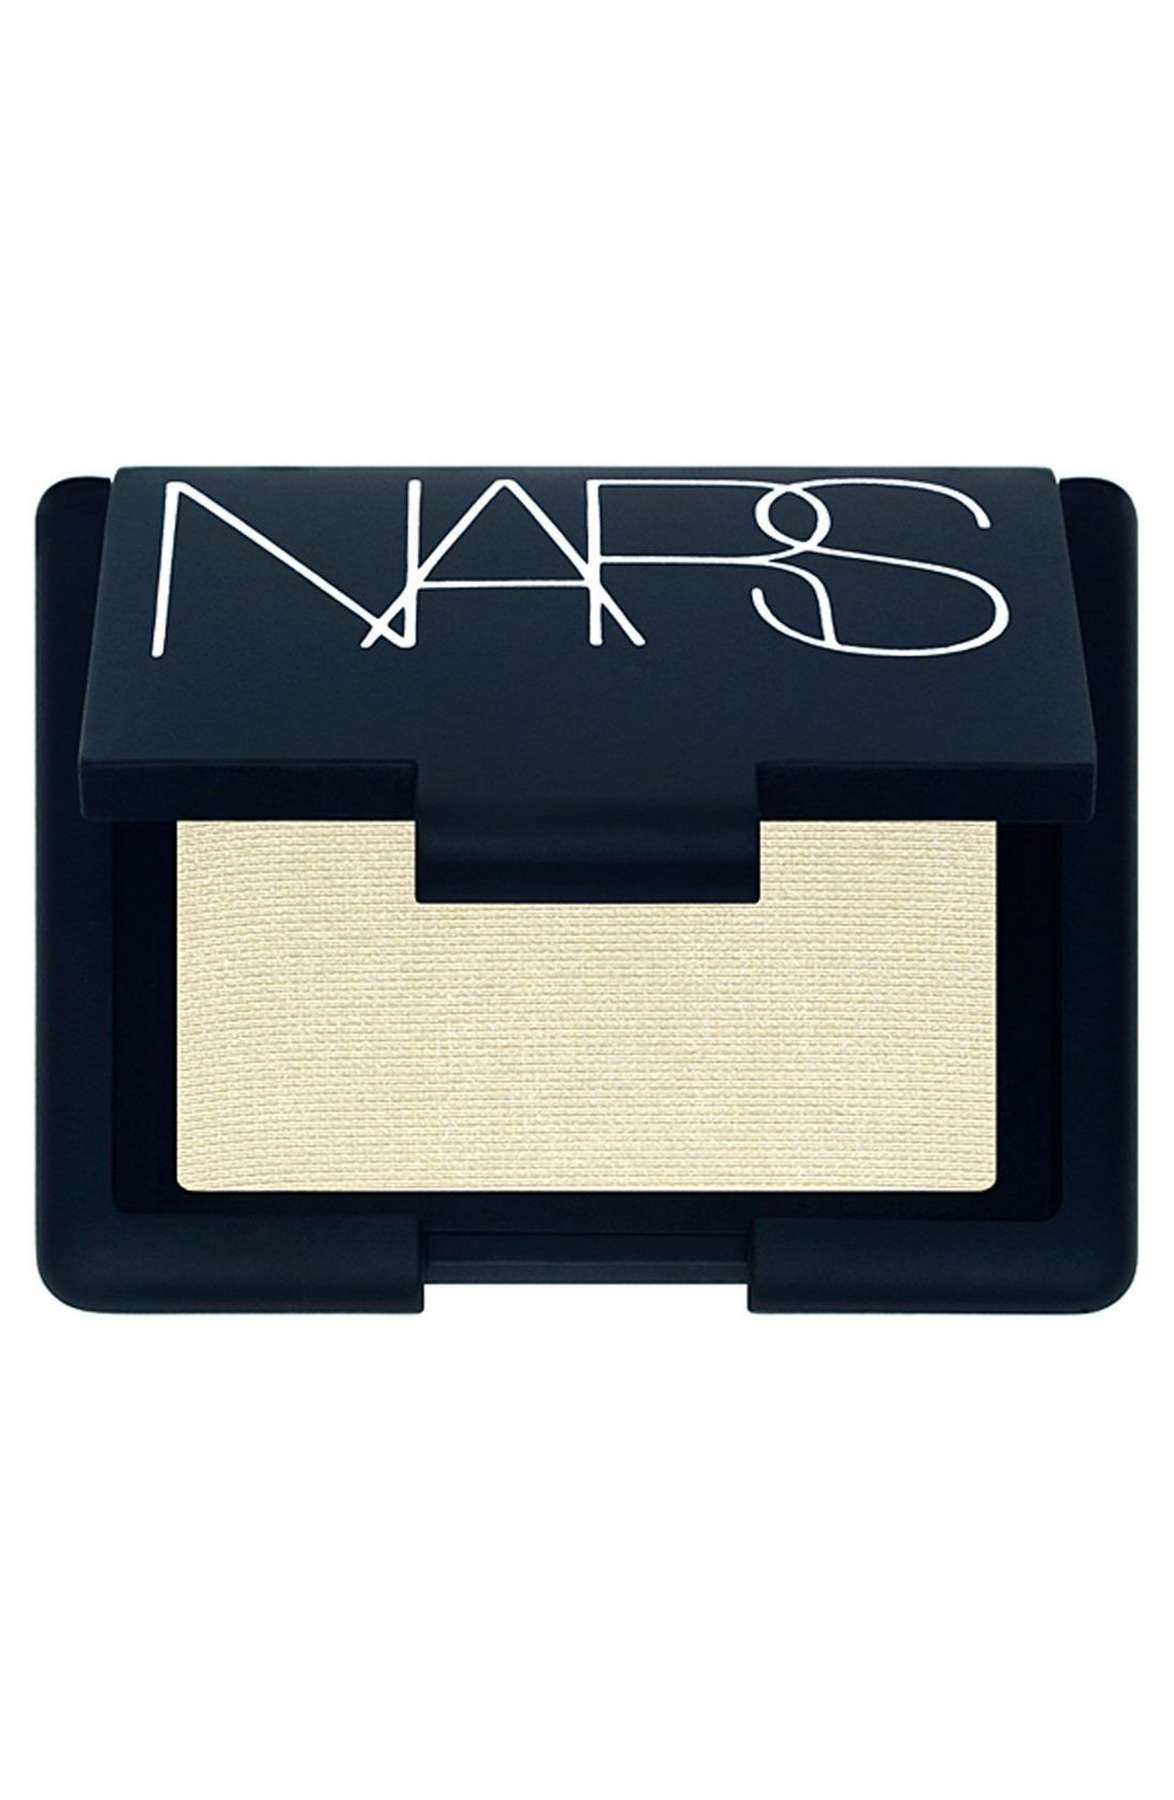 NARS Highlighter in Albatross